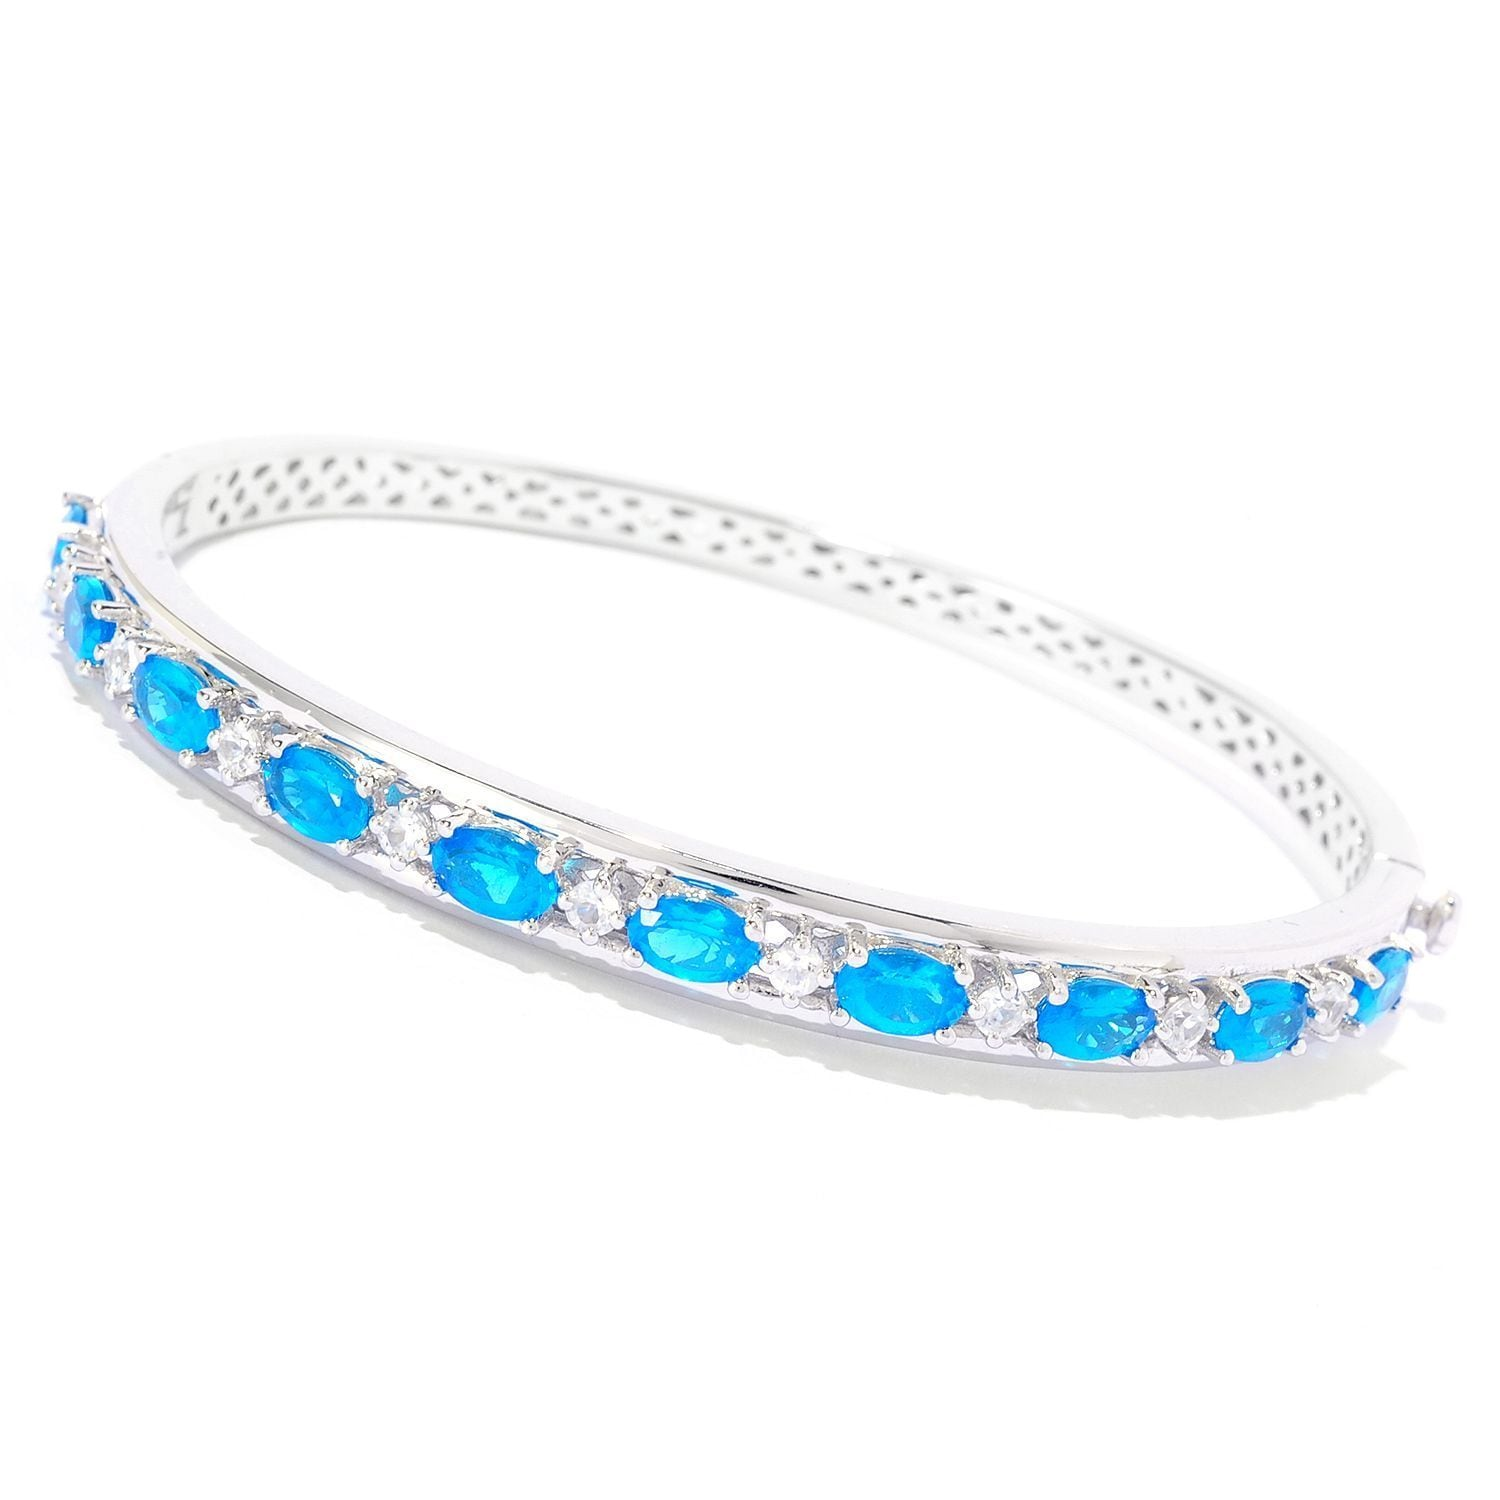 bracelets jewelry women from zircon new hand charm white design in bracelet platinum s plated blue item gold banquet shining romantic chain color opk